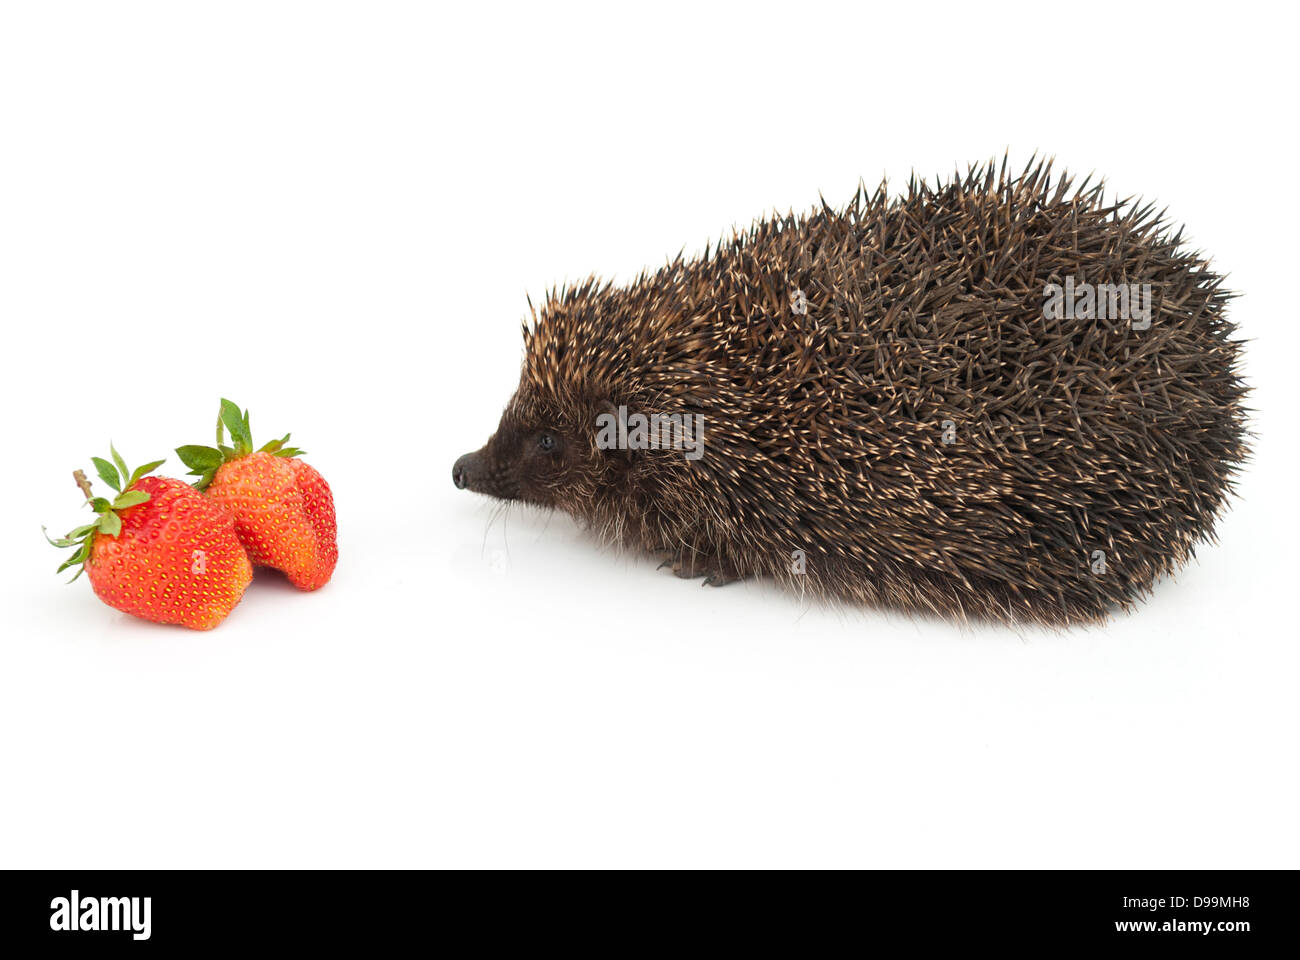 Hedgehog and strawberries - Stock Image